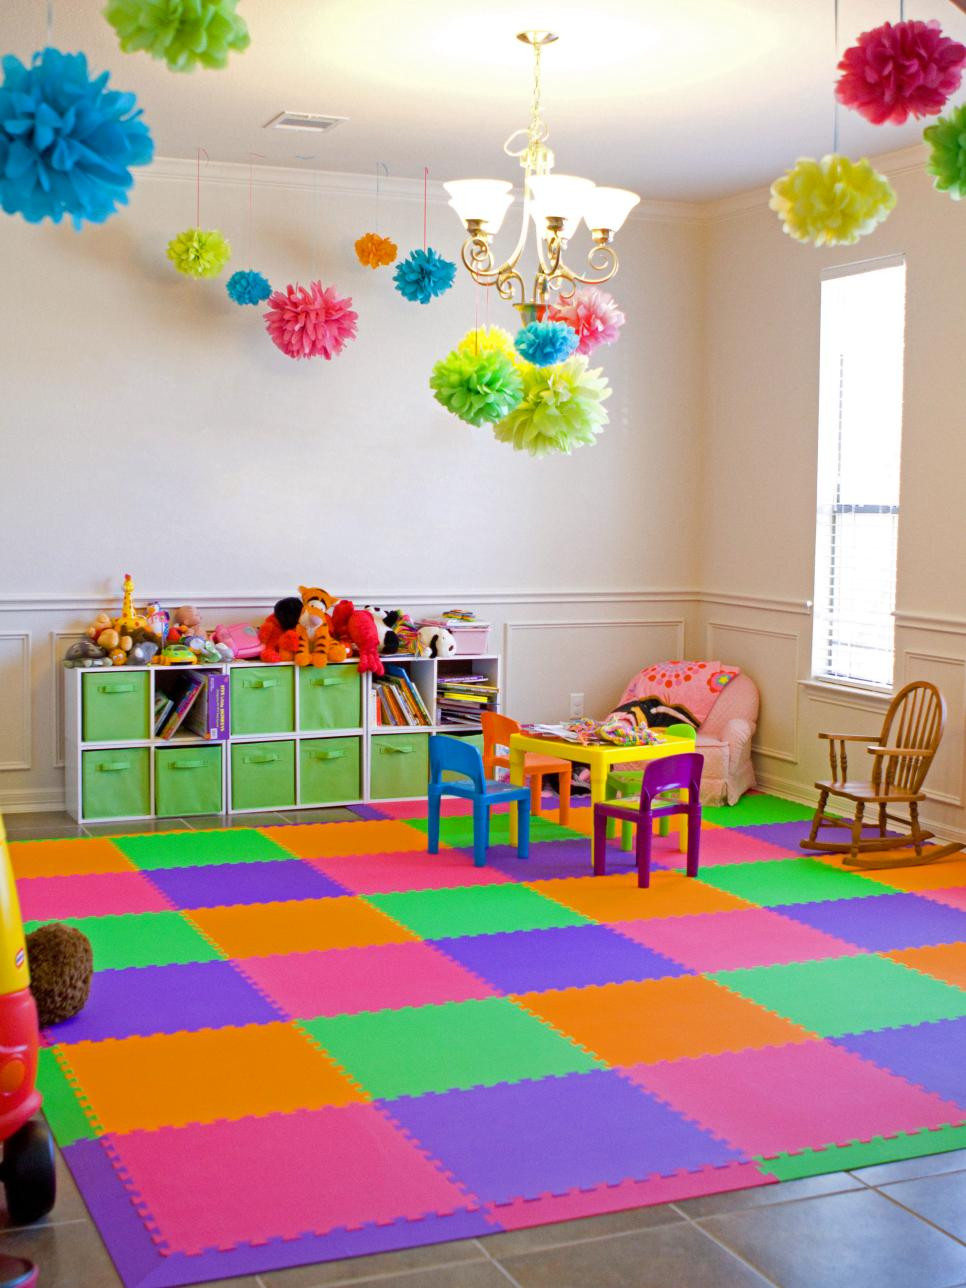 Carpet Designs for Kids 8 Kids Flooring Ideas